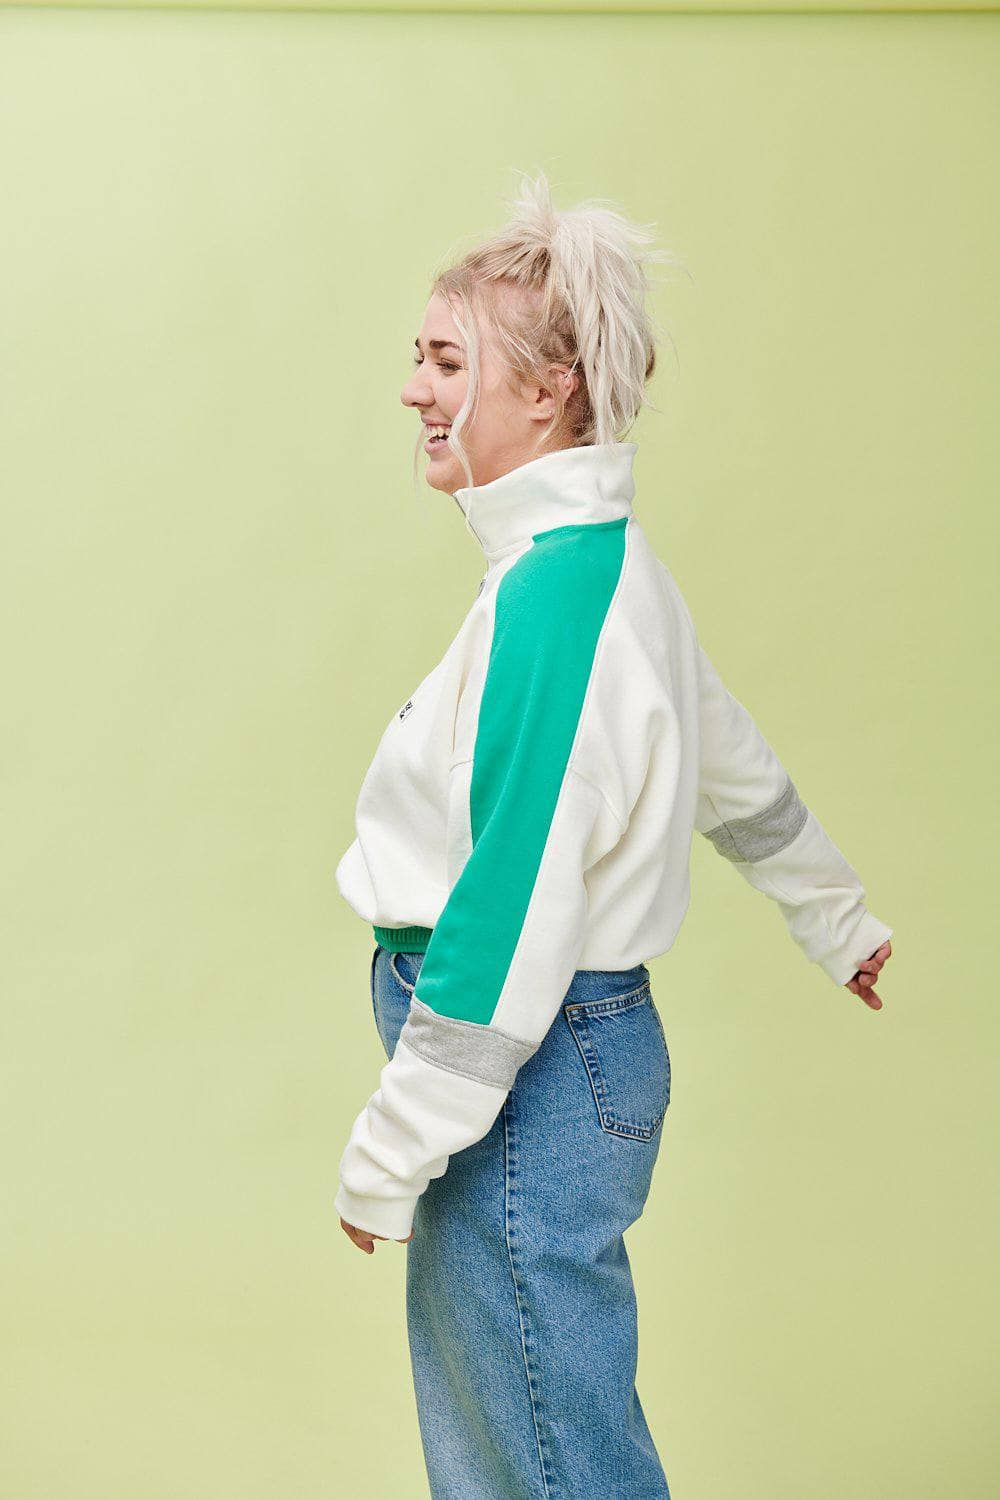 Lucy & Yak Tops 'Marley' Cropped Half Zip Sweater In Cream